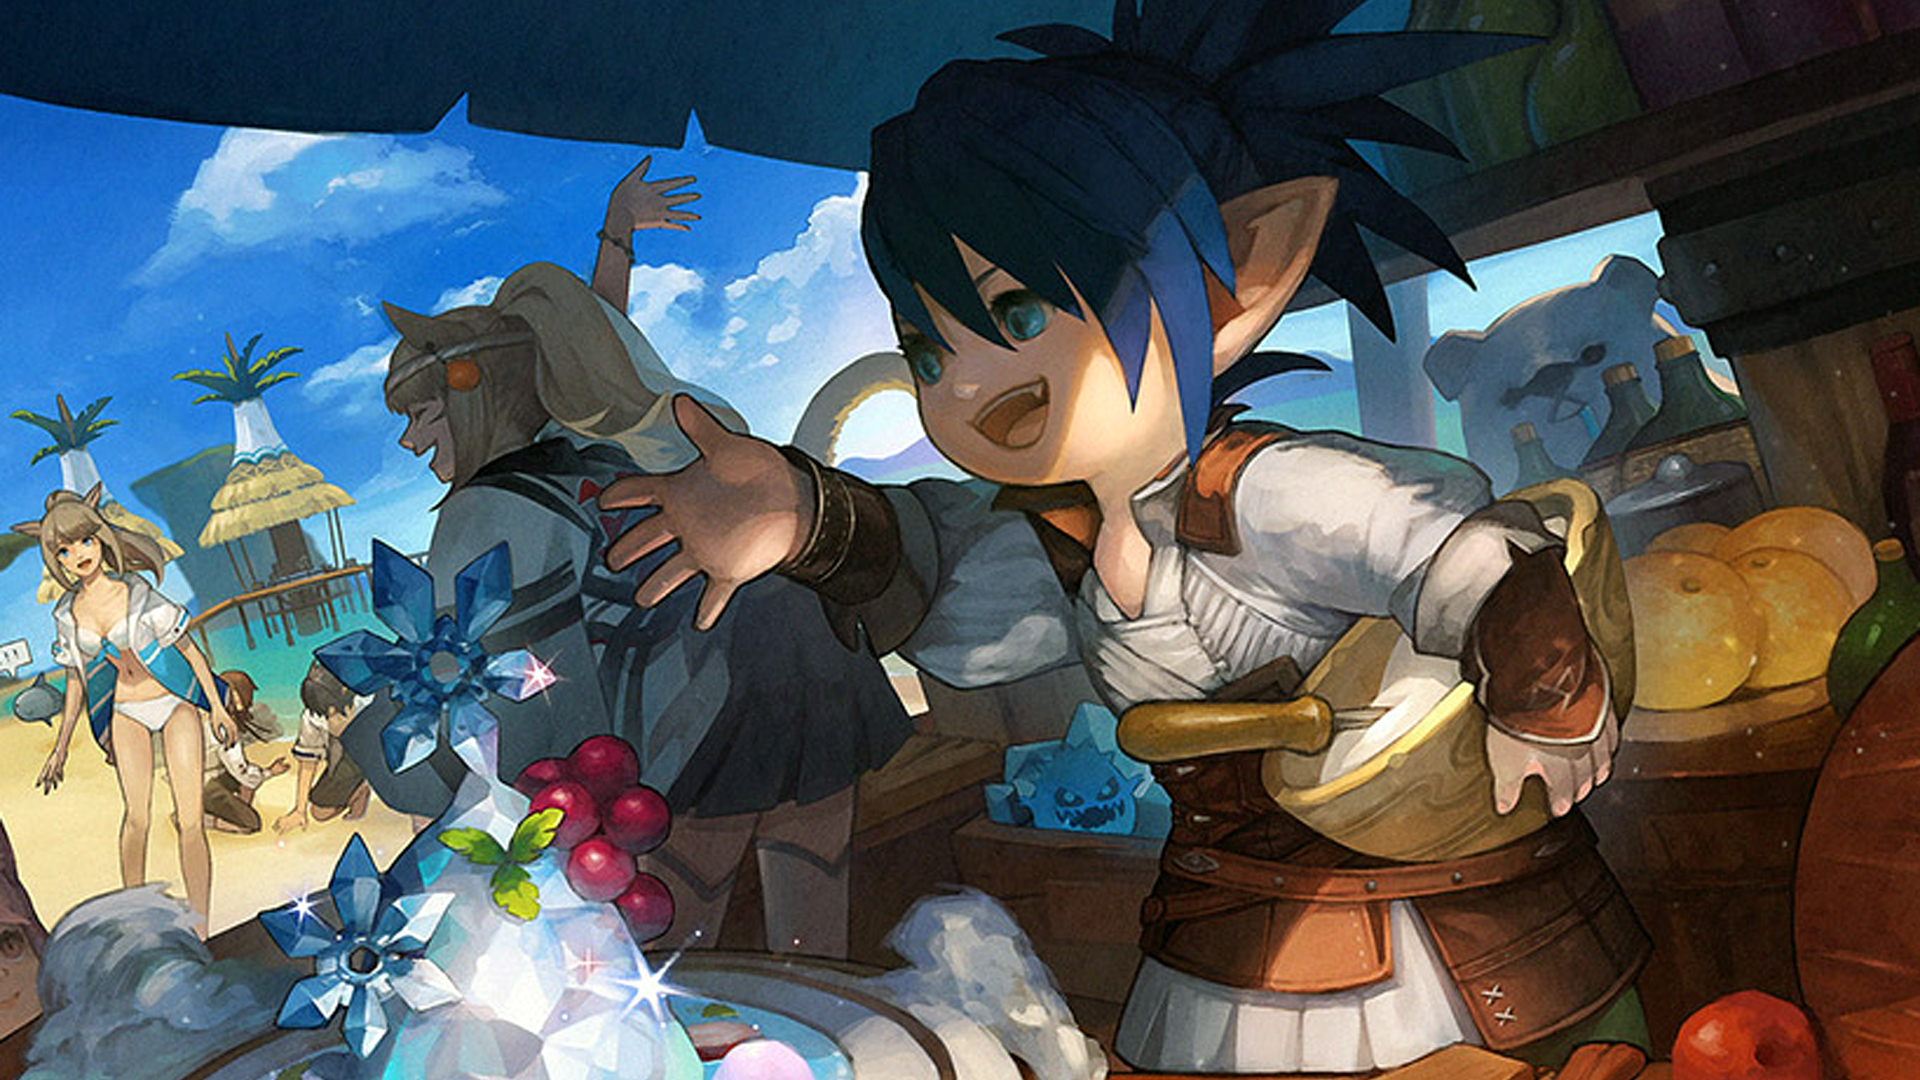 FFXIV's Moonfire Faire is back next week with ice cream and polar bears